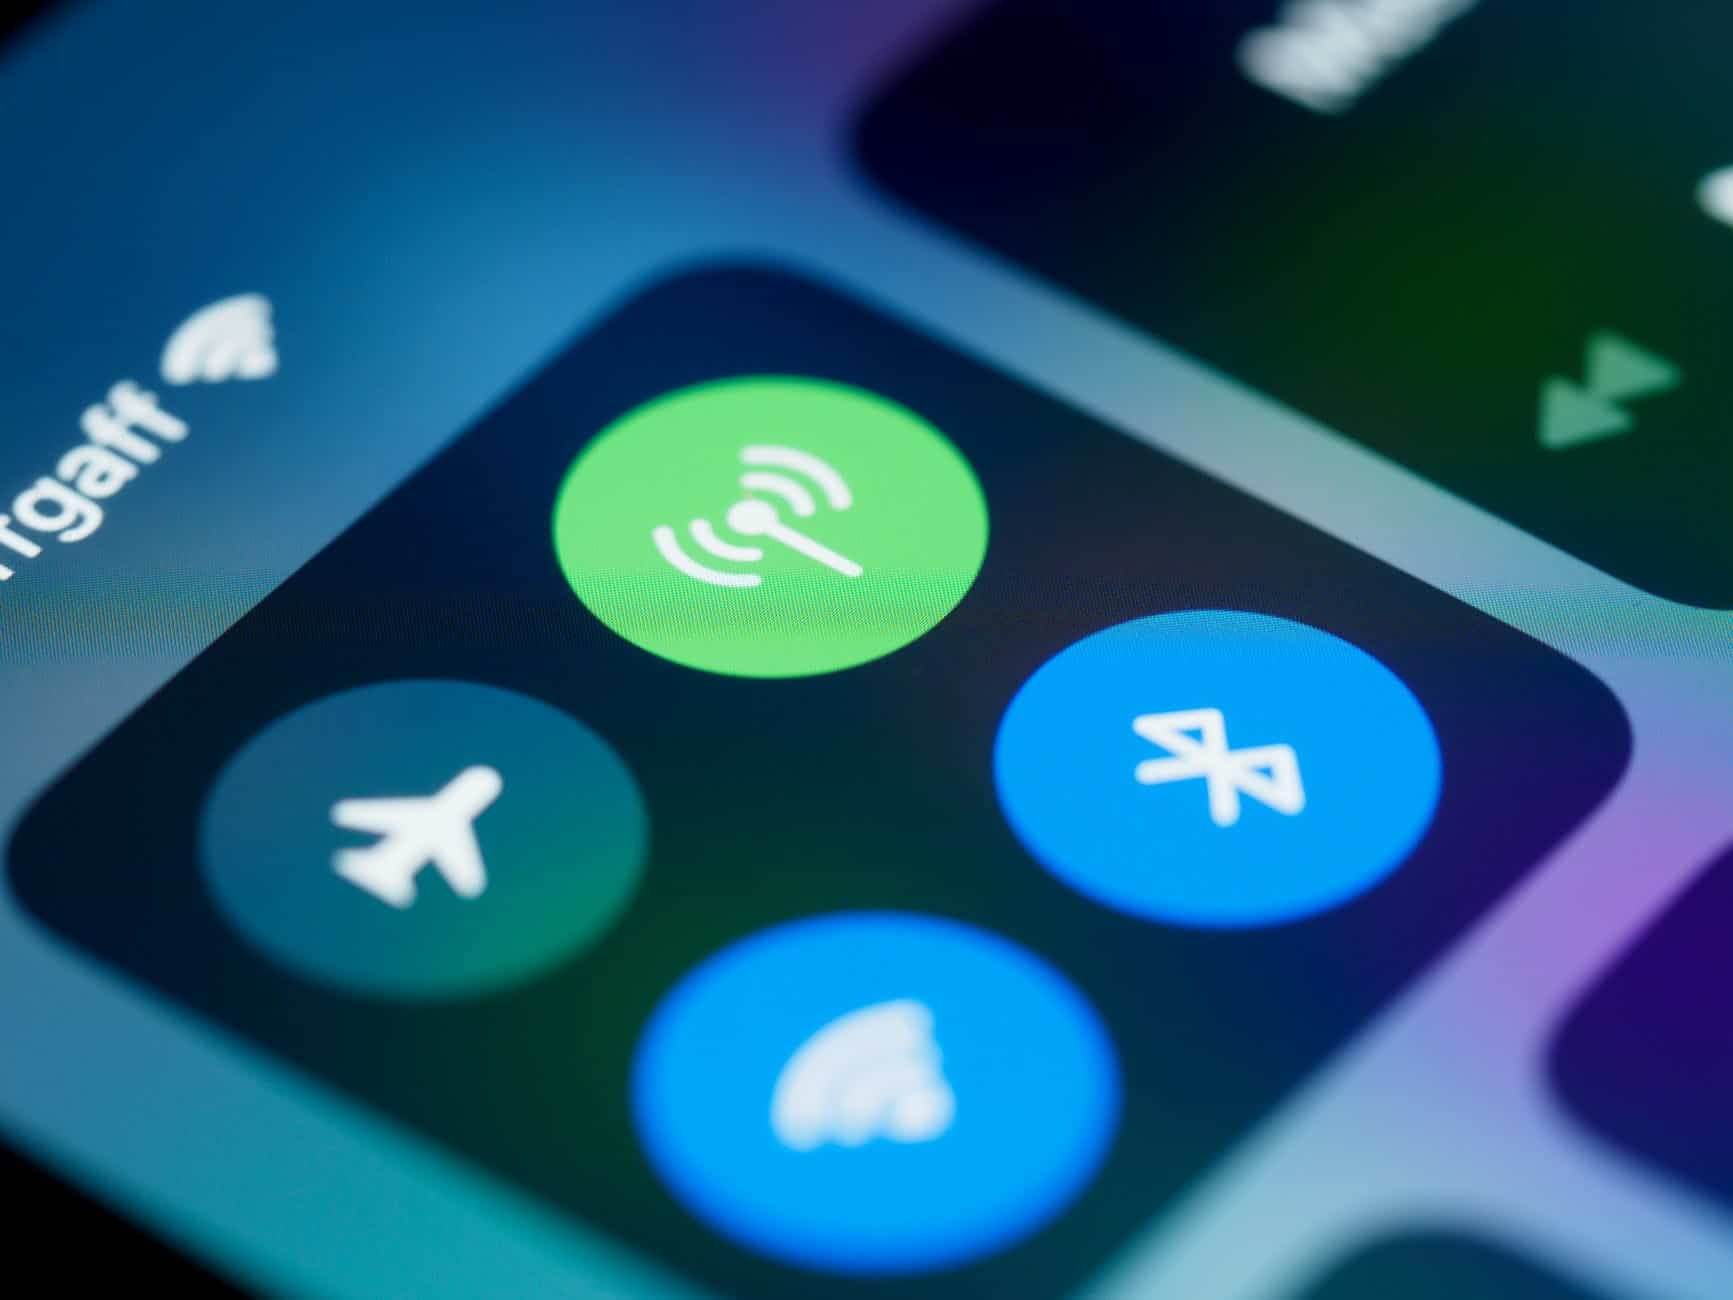 iOS 14.6 iphone smartphone internet connection